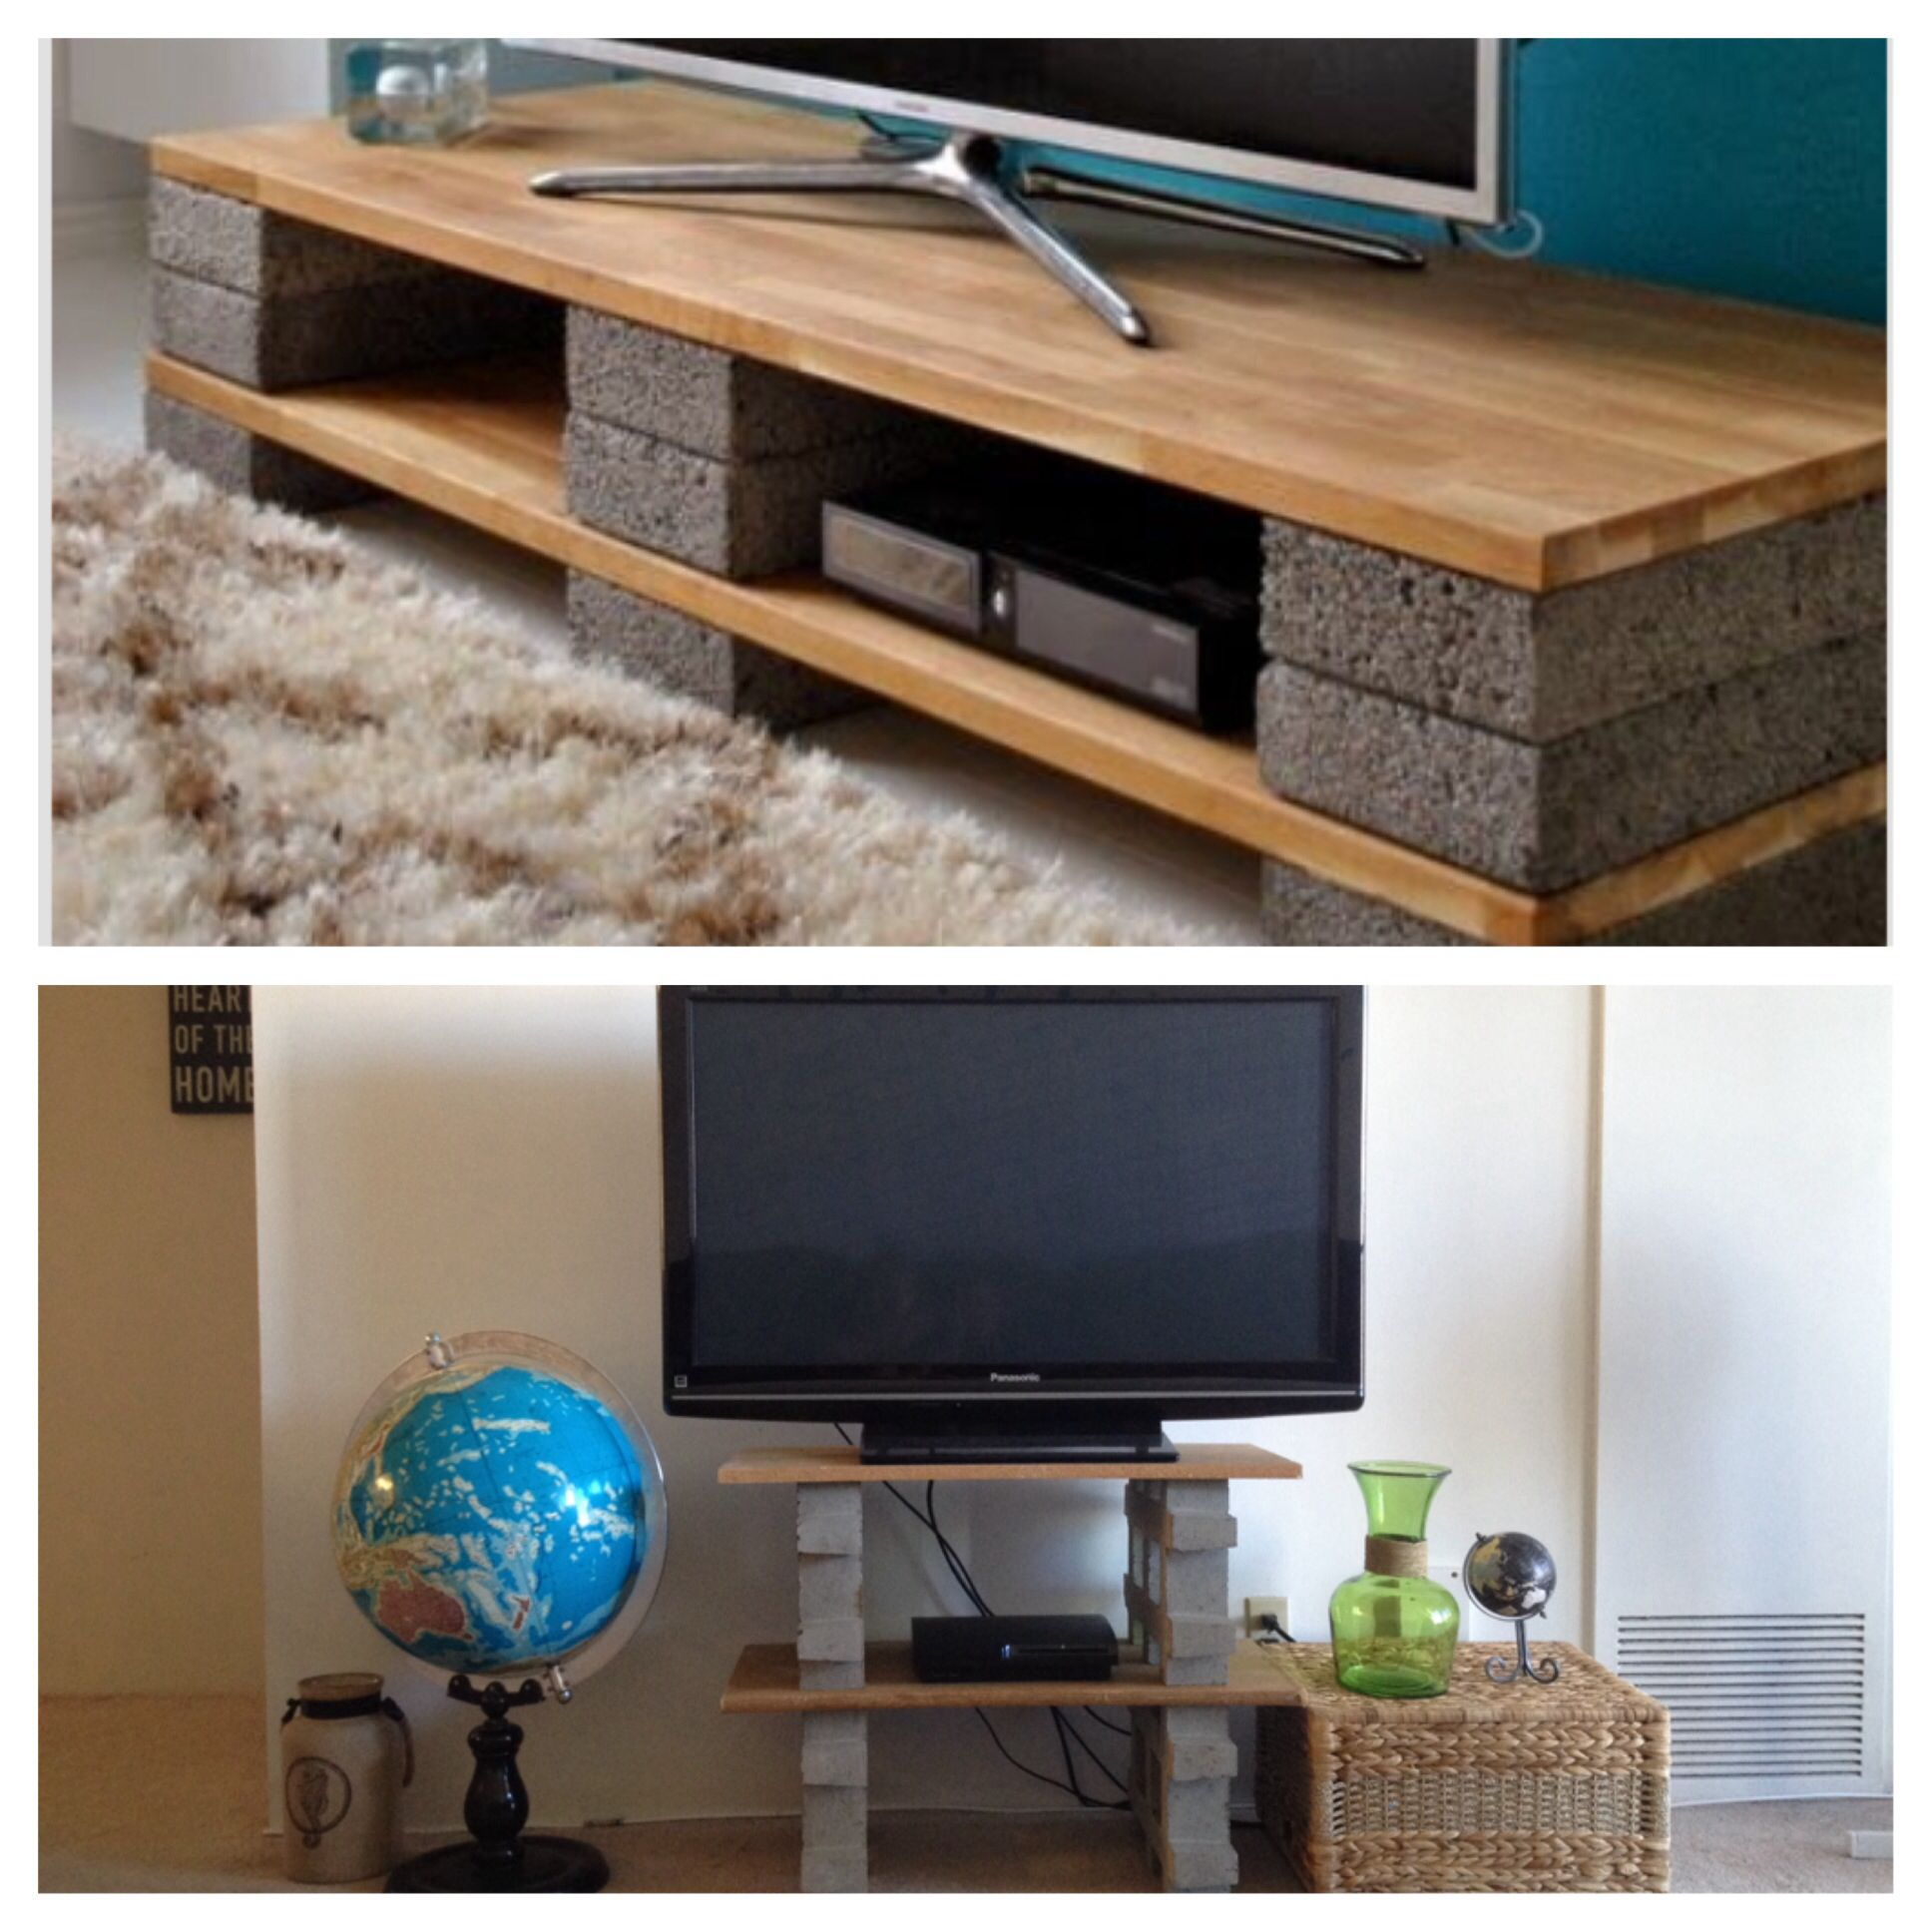 Pinterest inspired tv stand Blocks $4 15 each at Home Depot